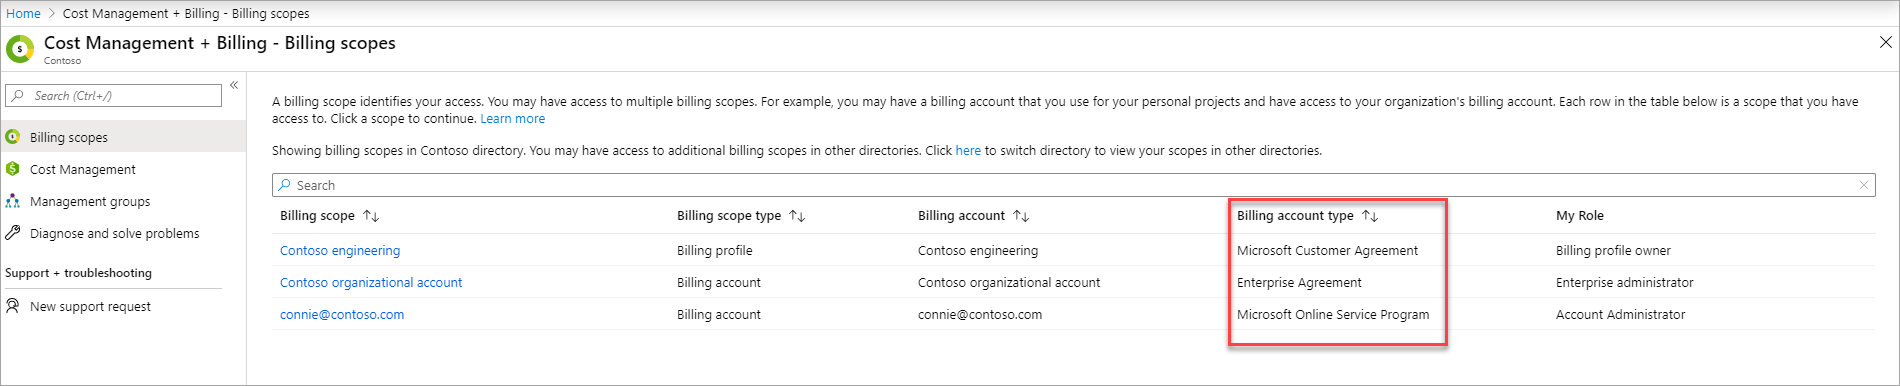 View and download your Microsoft Azure invoice | Microsoft Docs